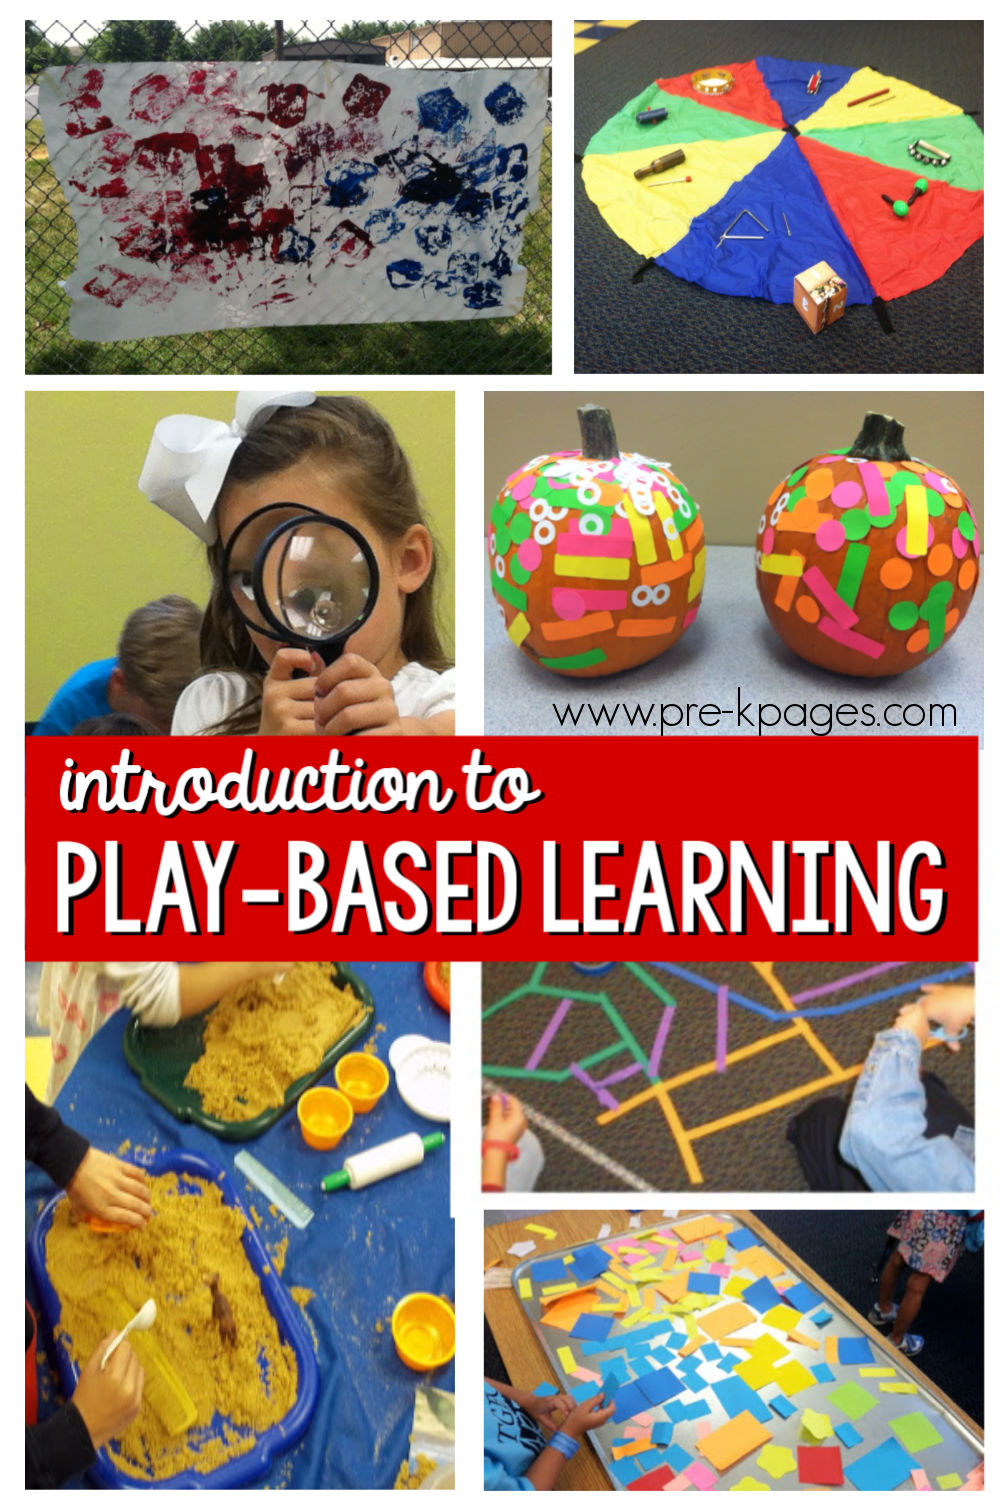 play-based learning for prek